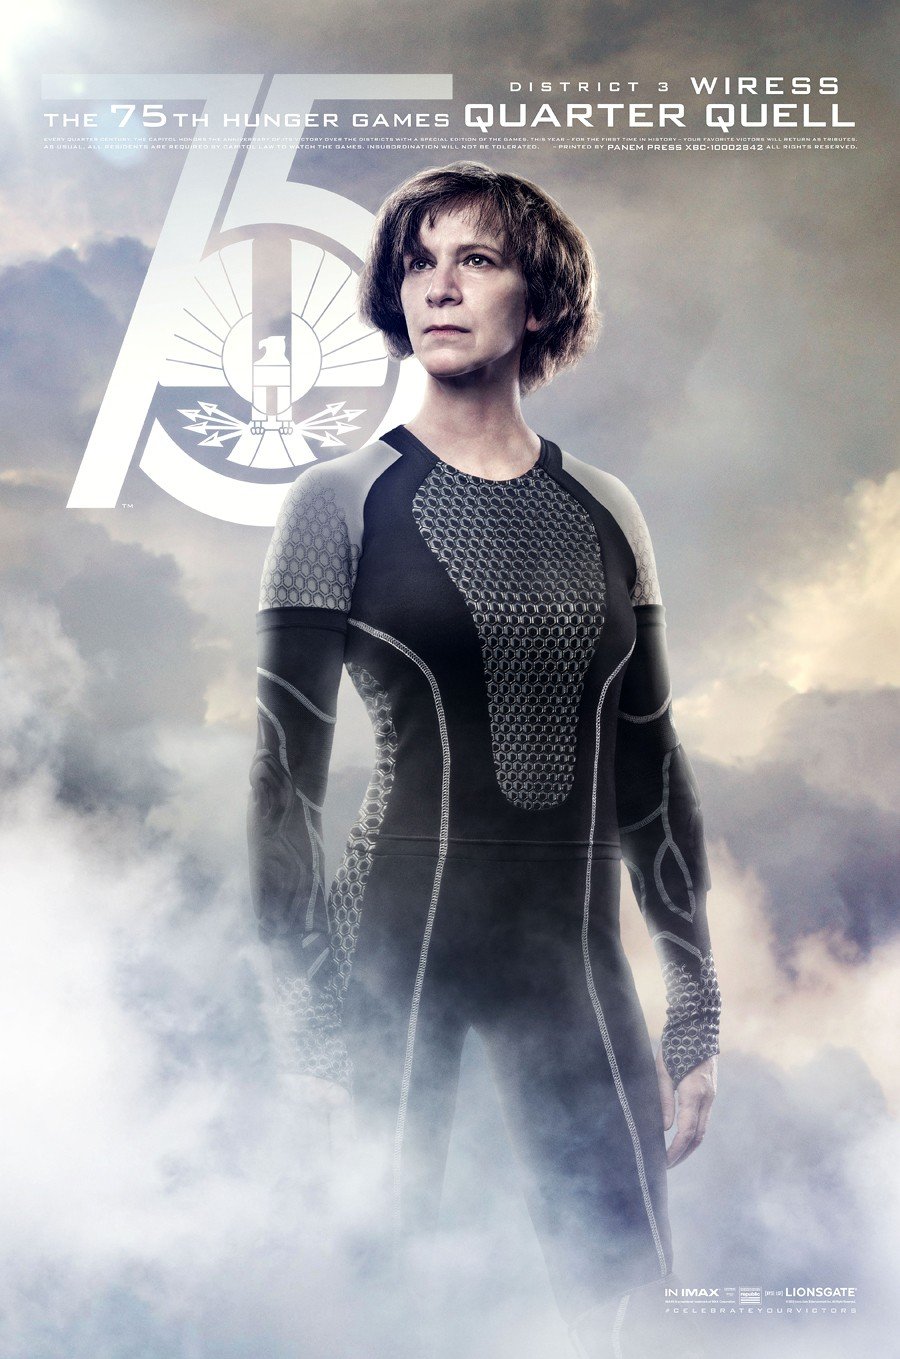 The Hunger Games: Catching Fire Character Posters ...